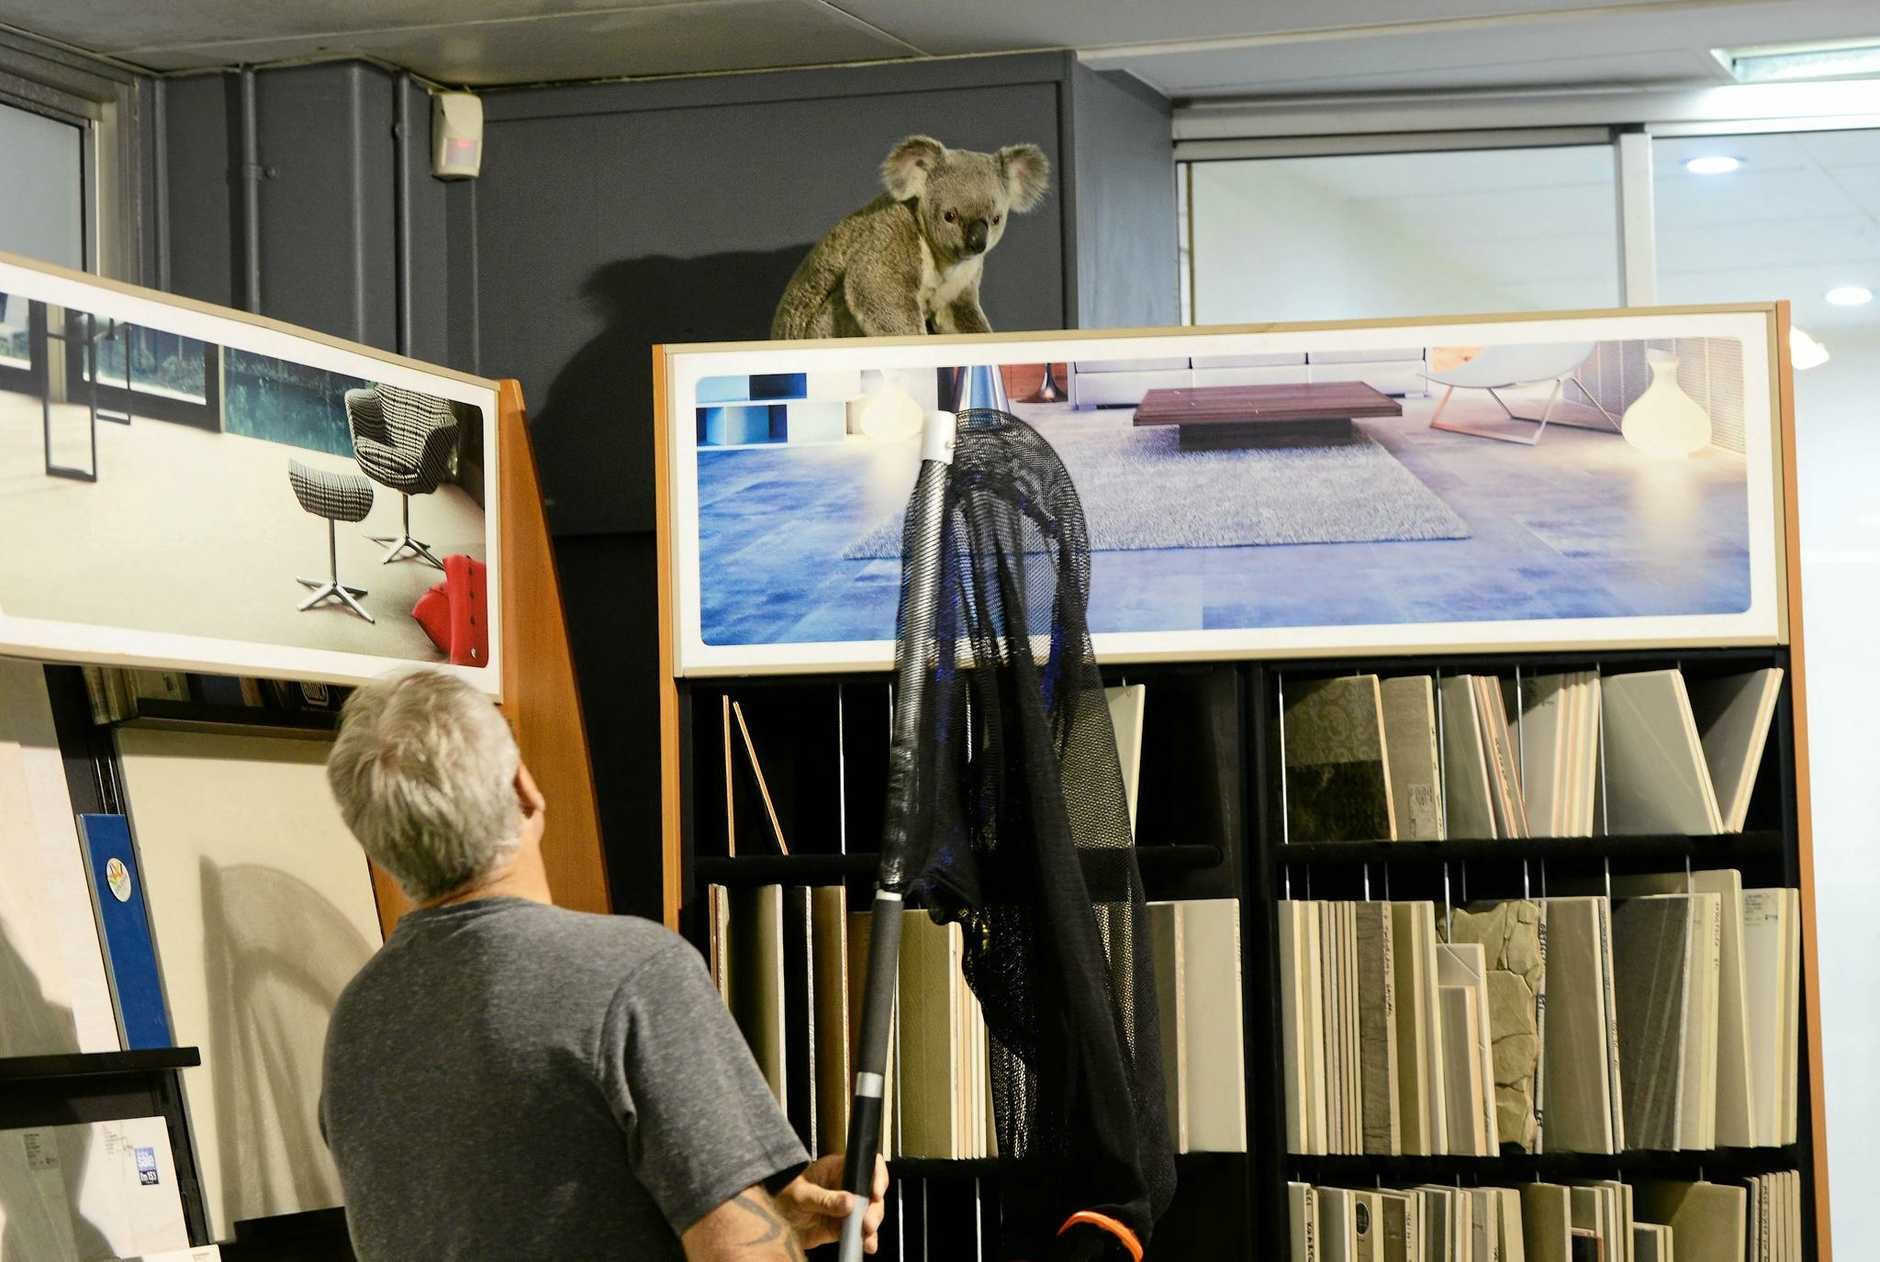 Koala catcher Peter Luker removed a stray Koala from inside the showroom of Choices Flooring in the Top of Town.